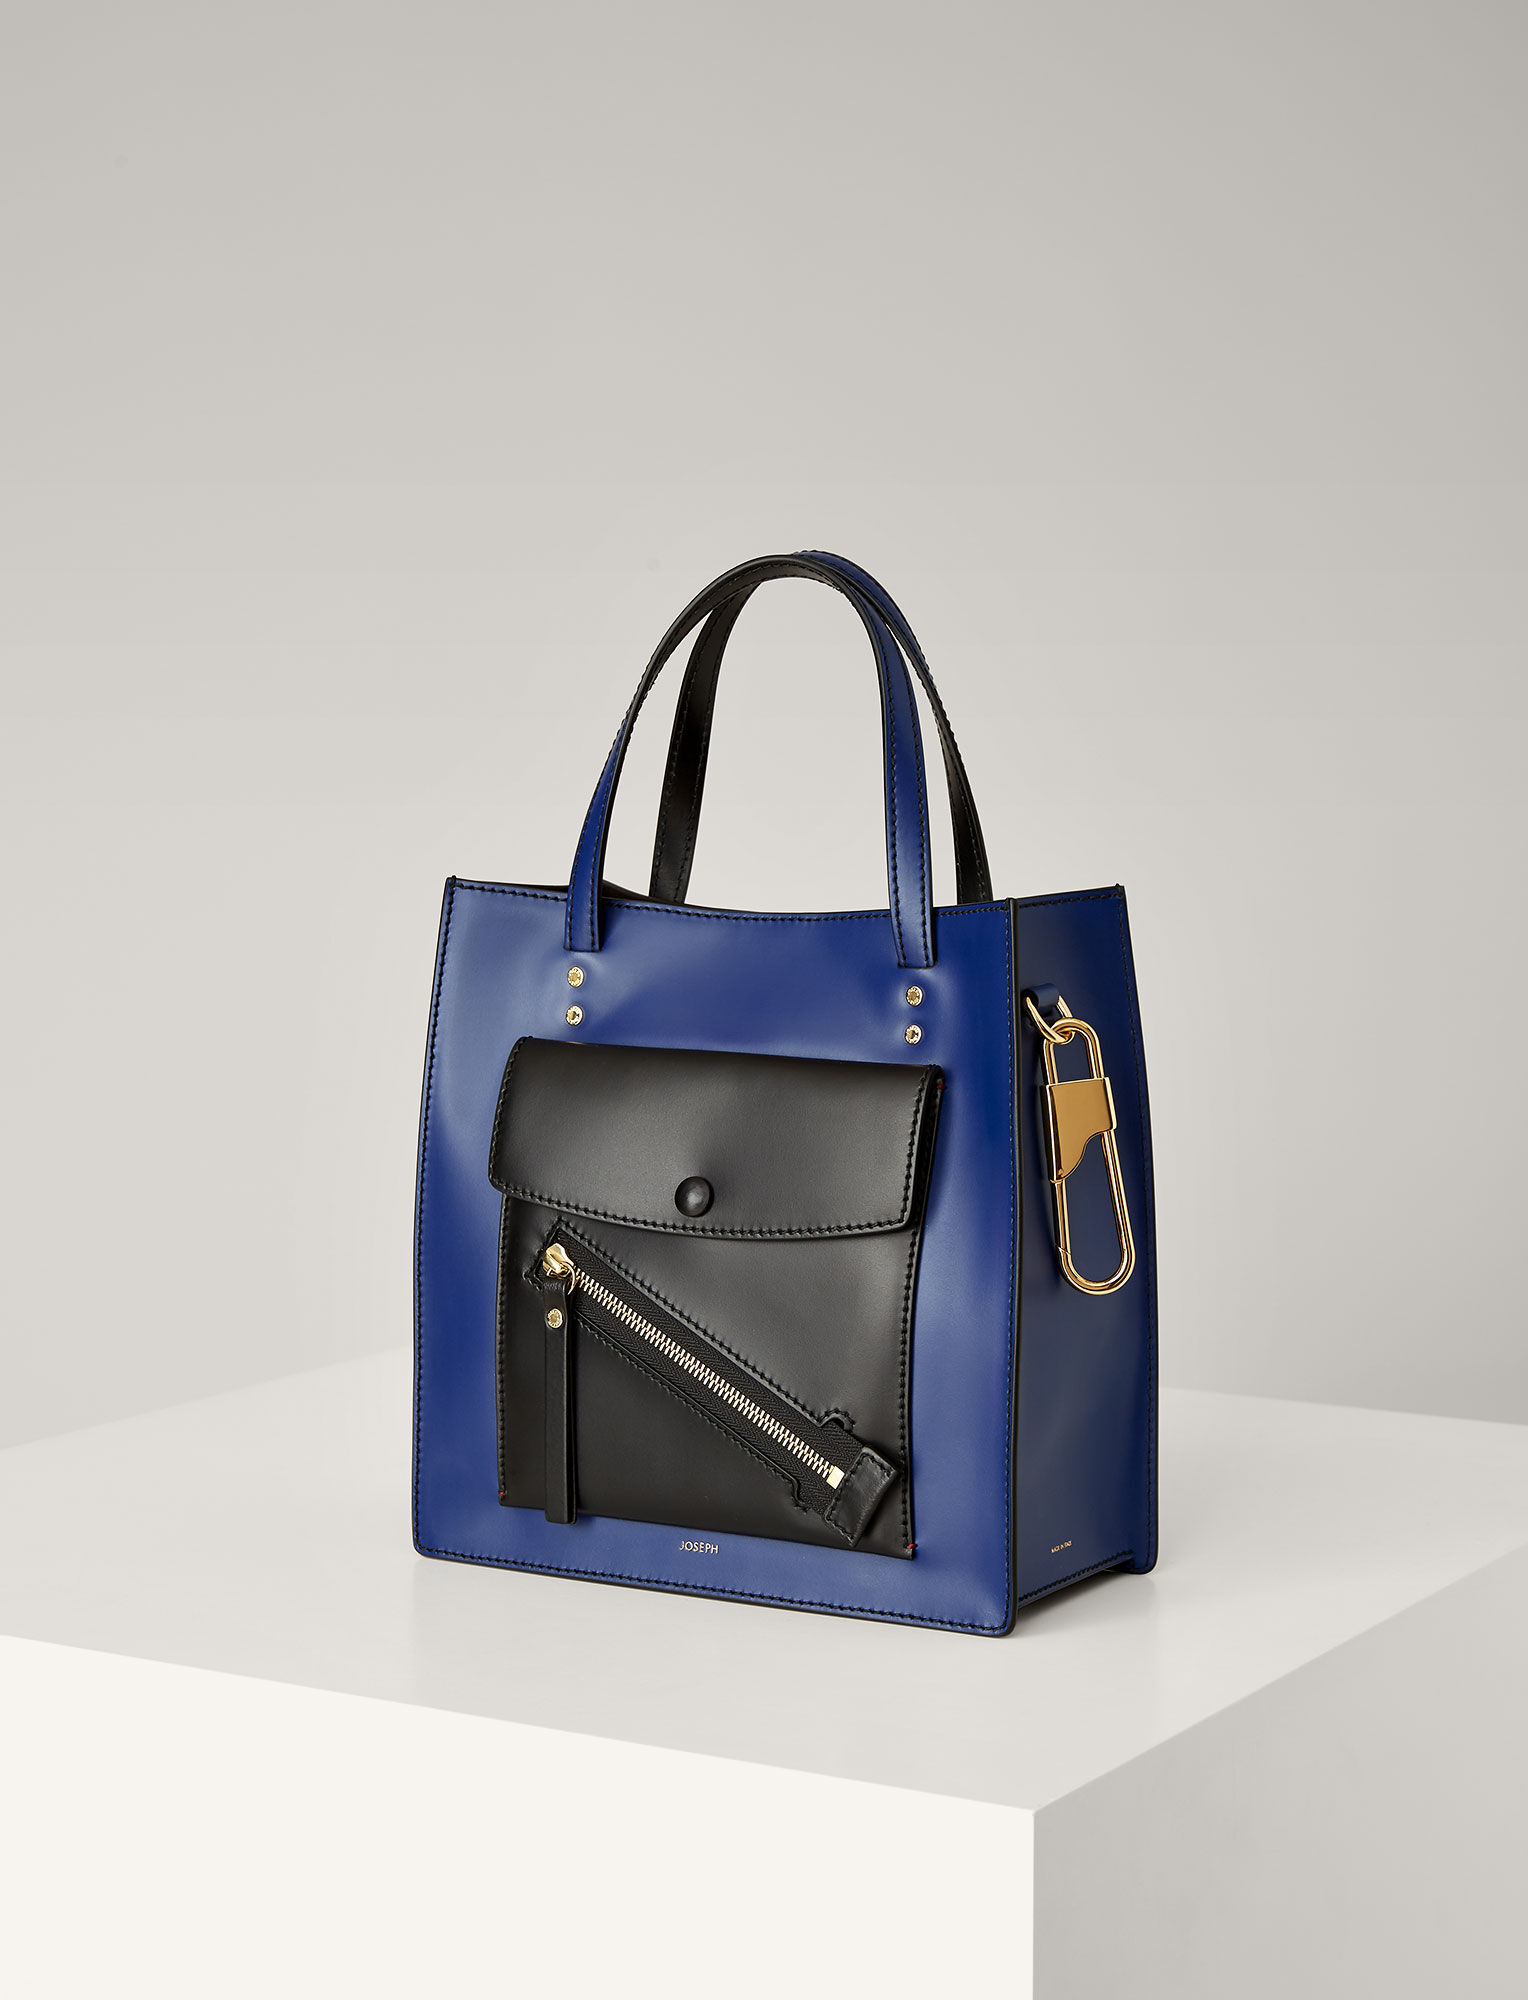 Joseph, Leather Portobello 25 Bag, in NAVY COMBO